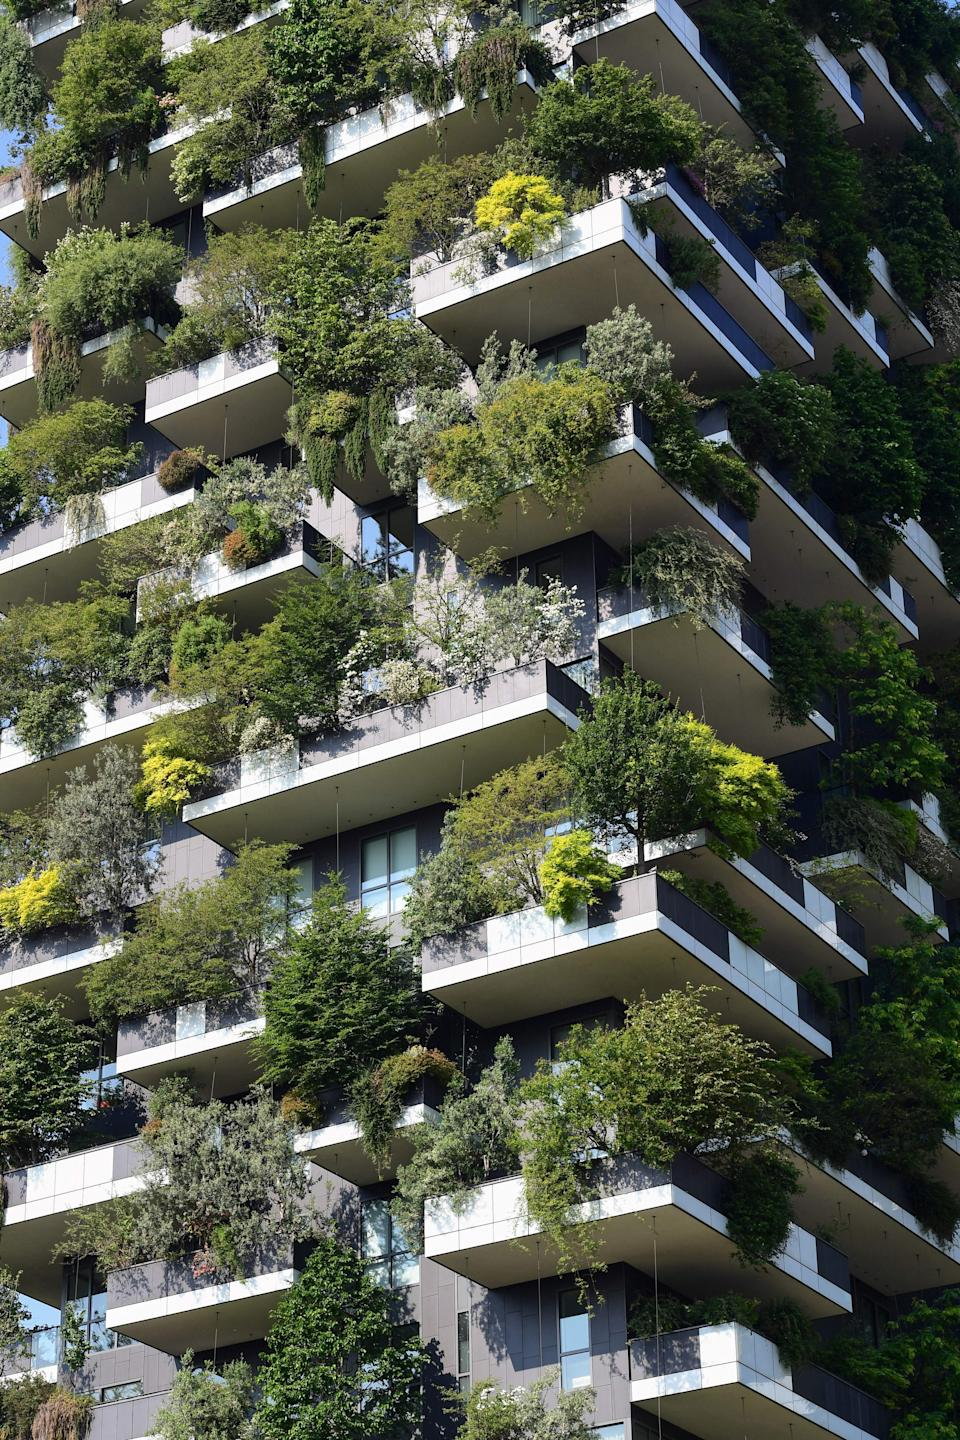 This photograph taken on June 2, 2021, shows a detail of the balconies of the architectural complex called Vertical forest (Bosco Verticale) designed by Studio Boeri in the modern district of Porta Nuova in Milan. (Photo by MIGUEL MEDINA / AFP) (Photo by MIGUEL MEDINA/AFP via Getty Images)